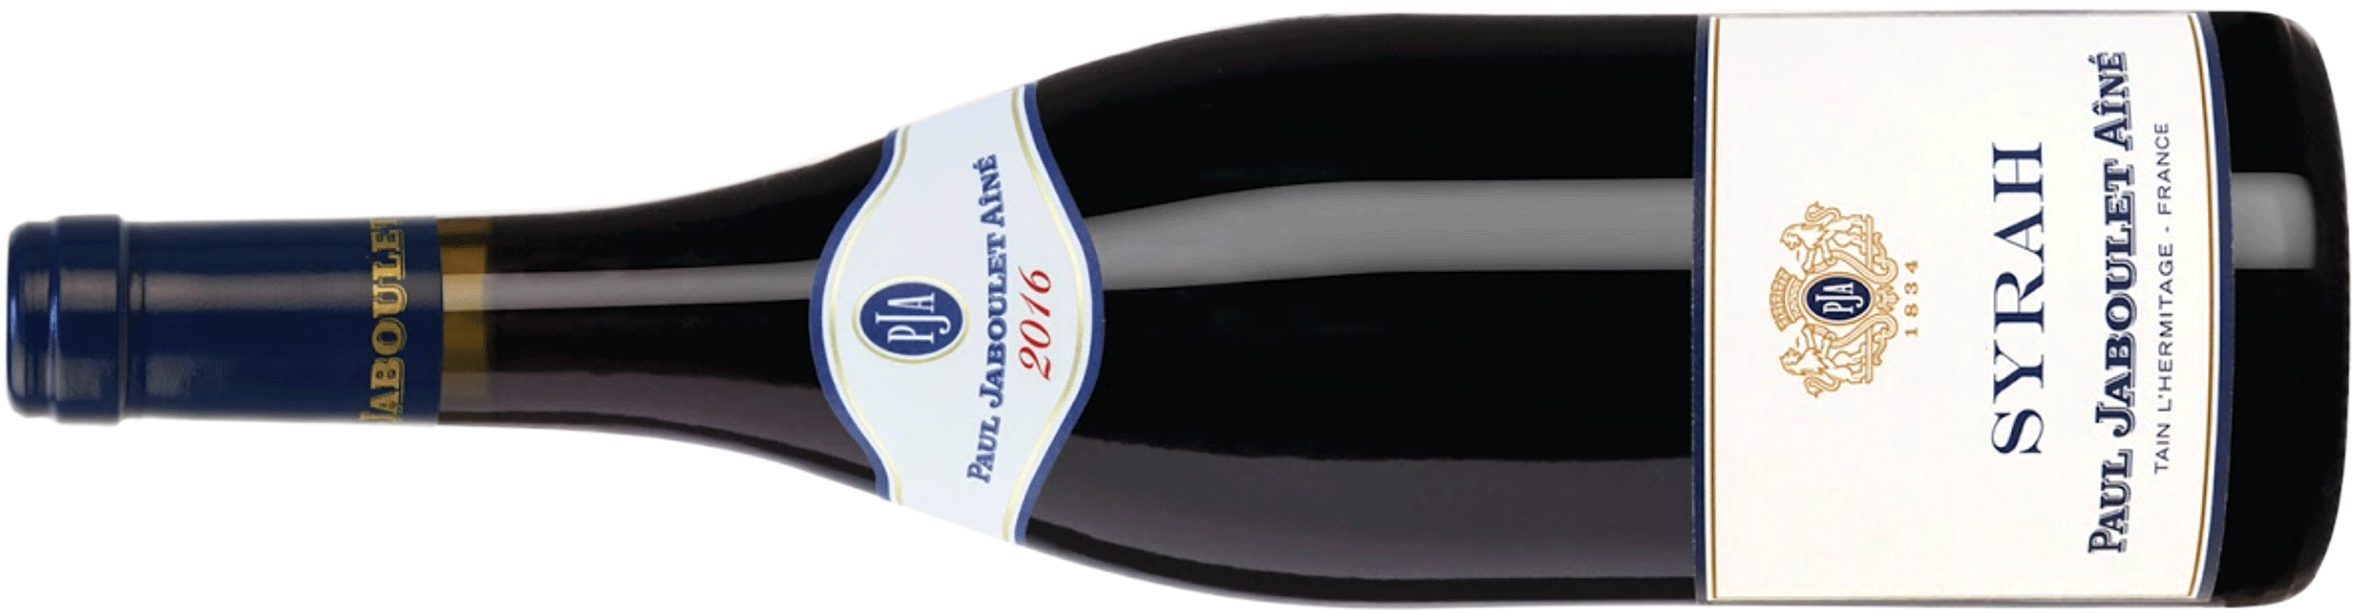 2016 Paul Jaboulet Aine VDF Syrah Bottle